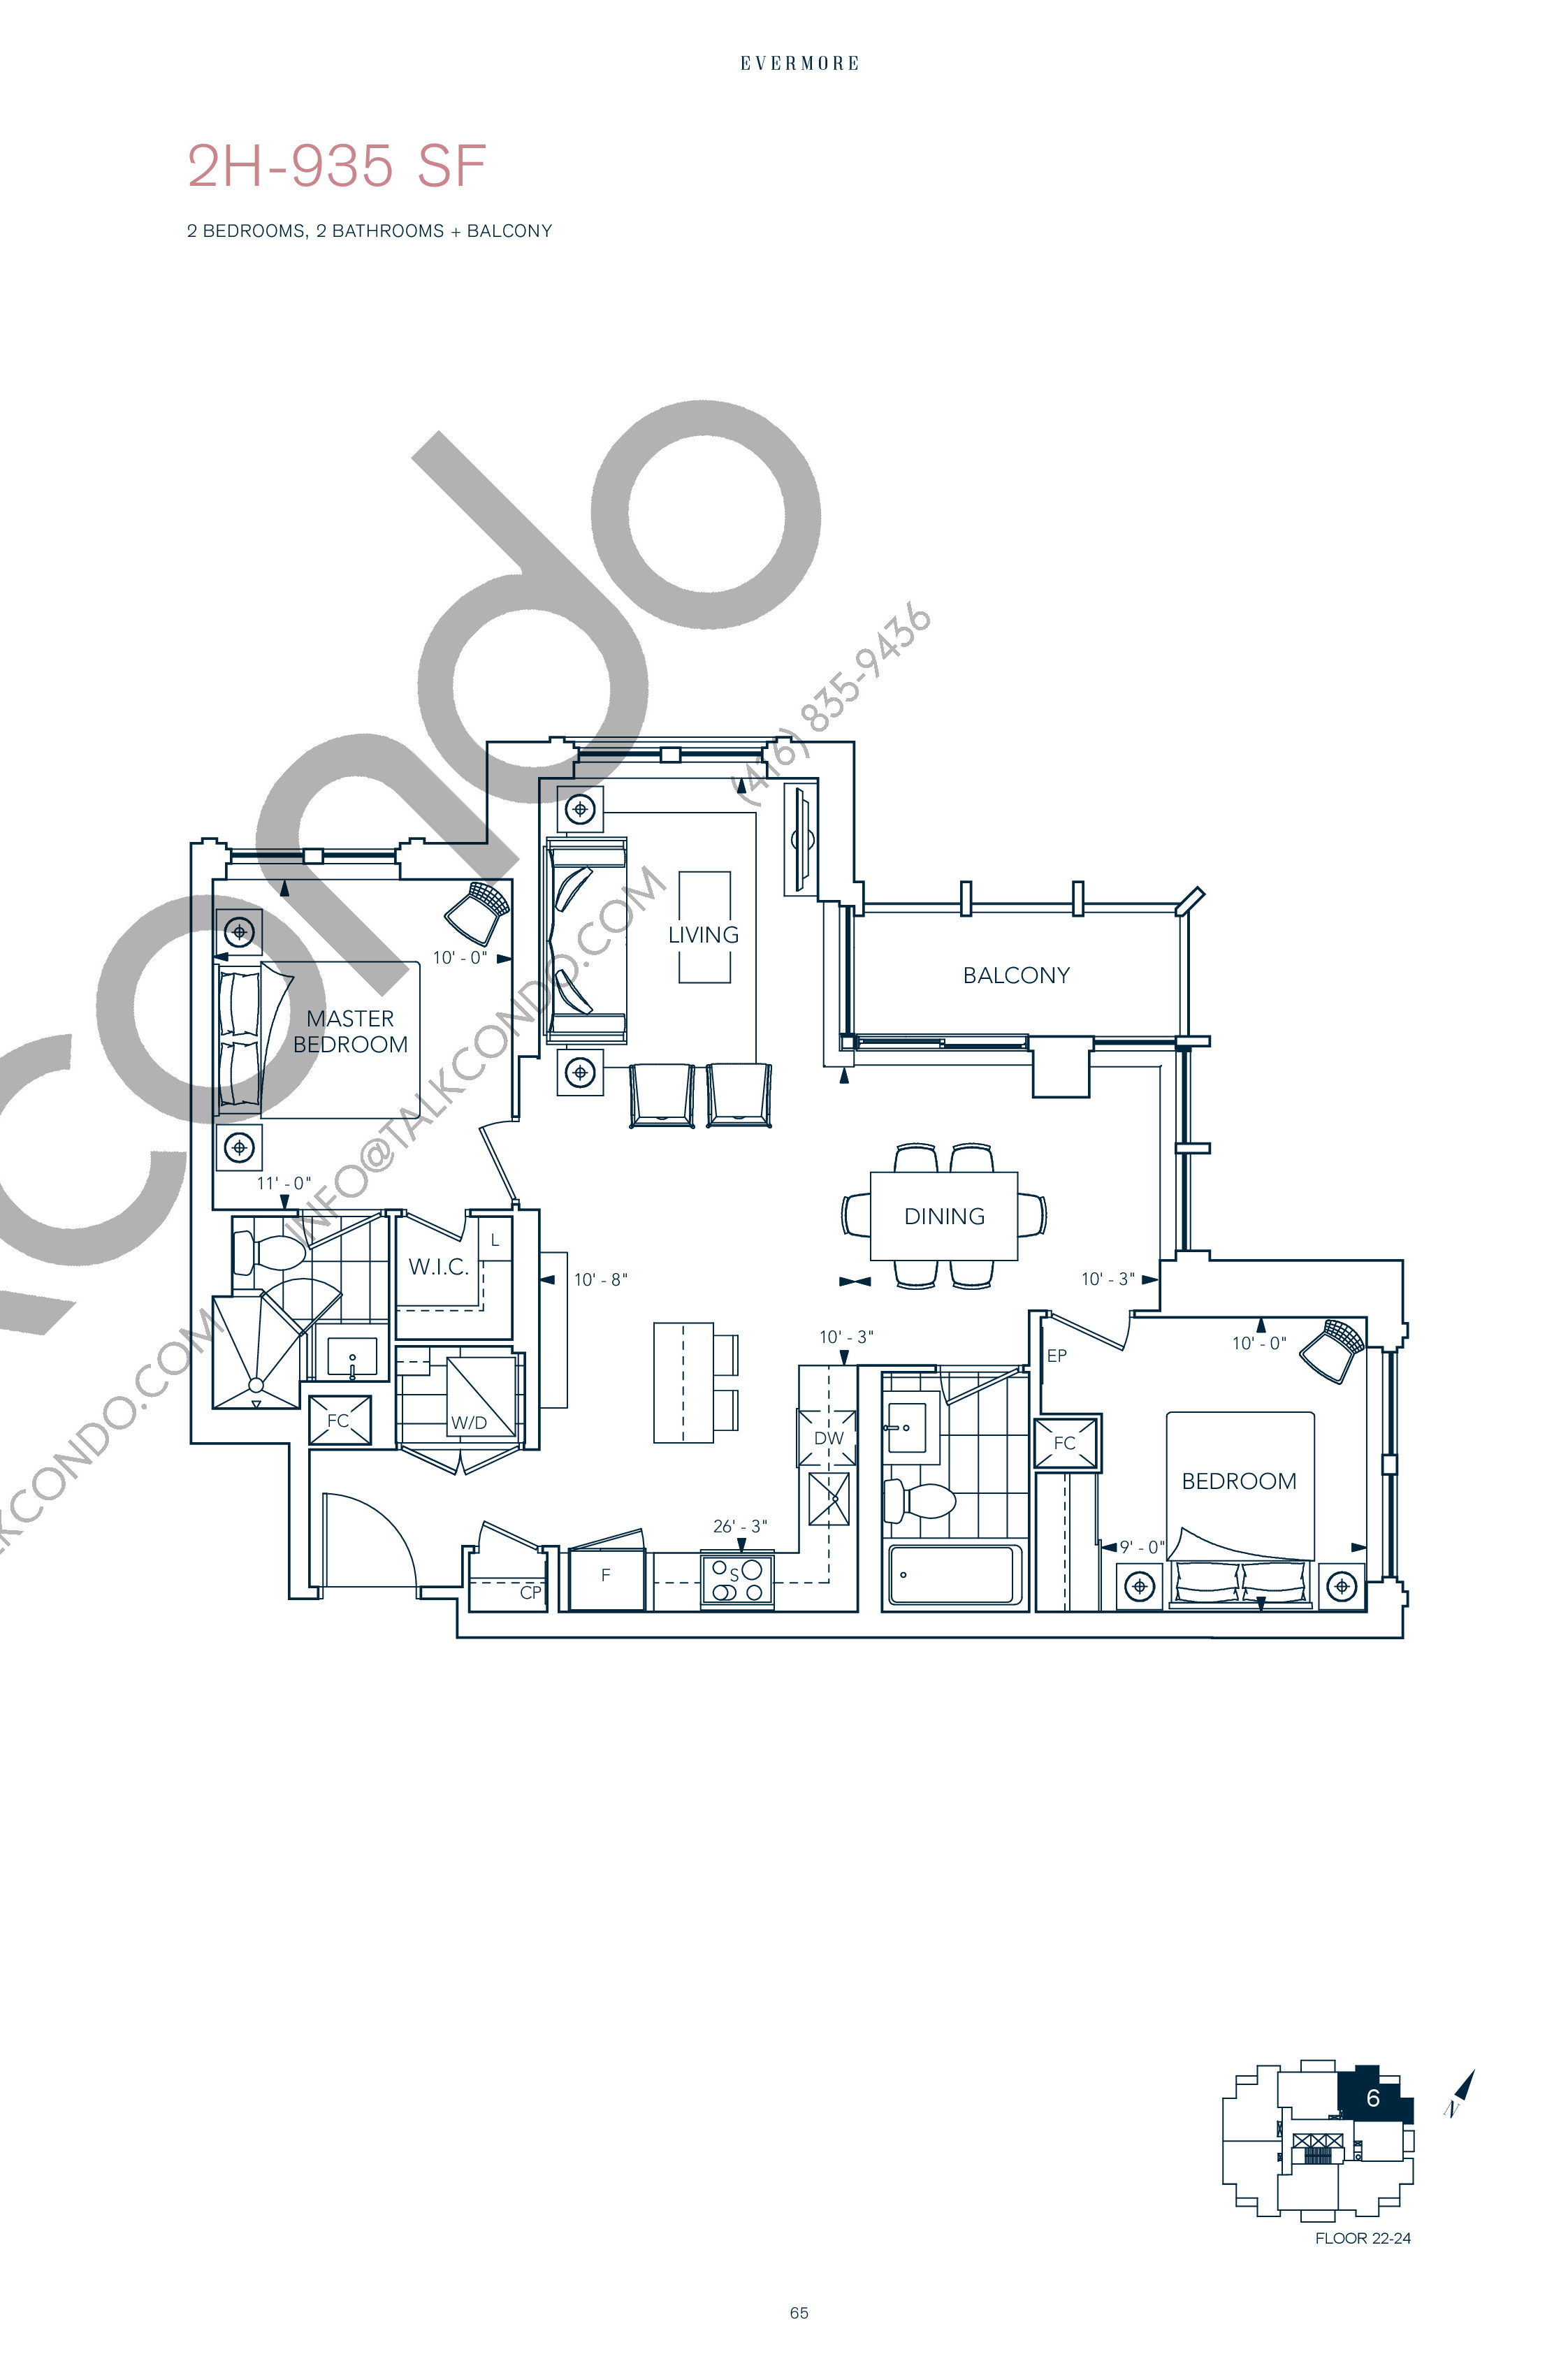 2H-935 SF Floor Plan at Evermore Condos - 935 sq.ft